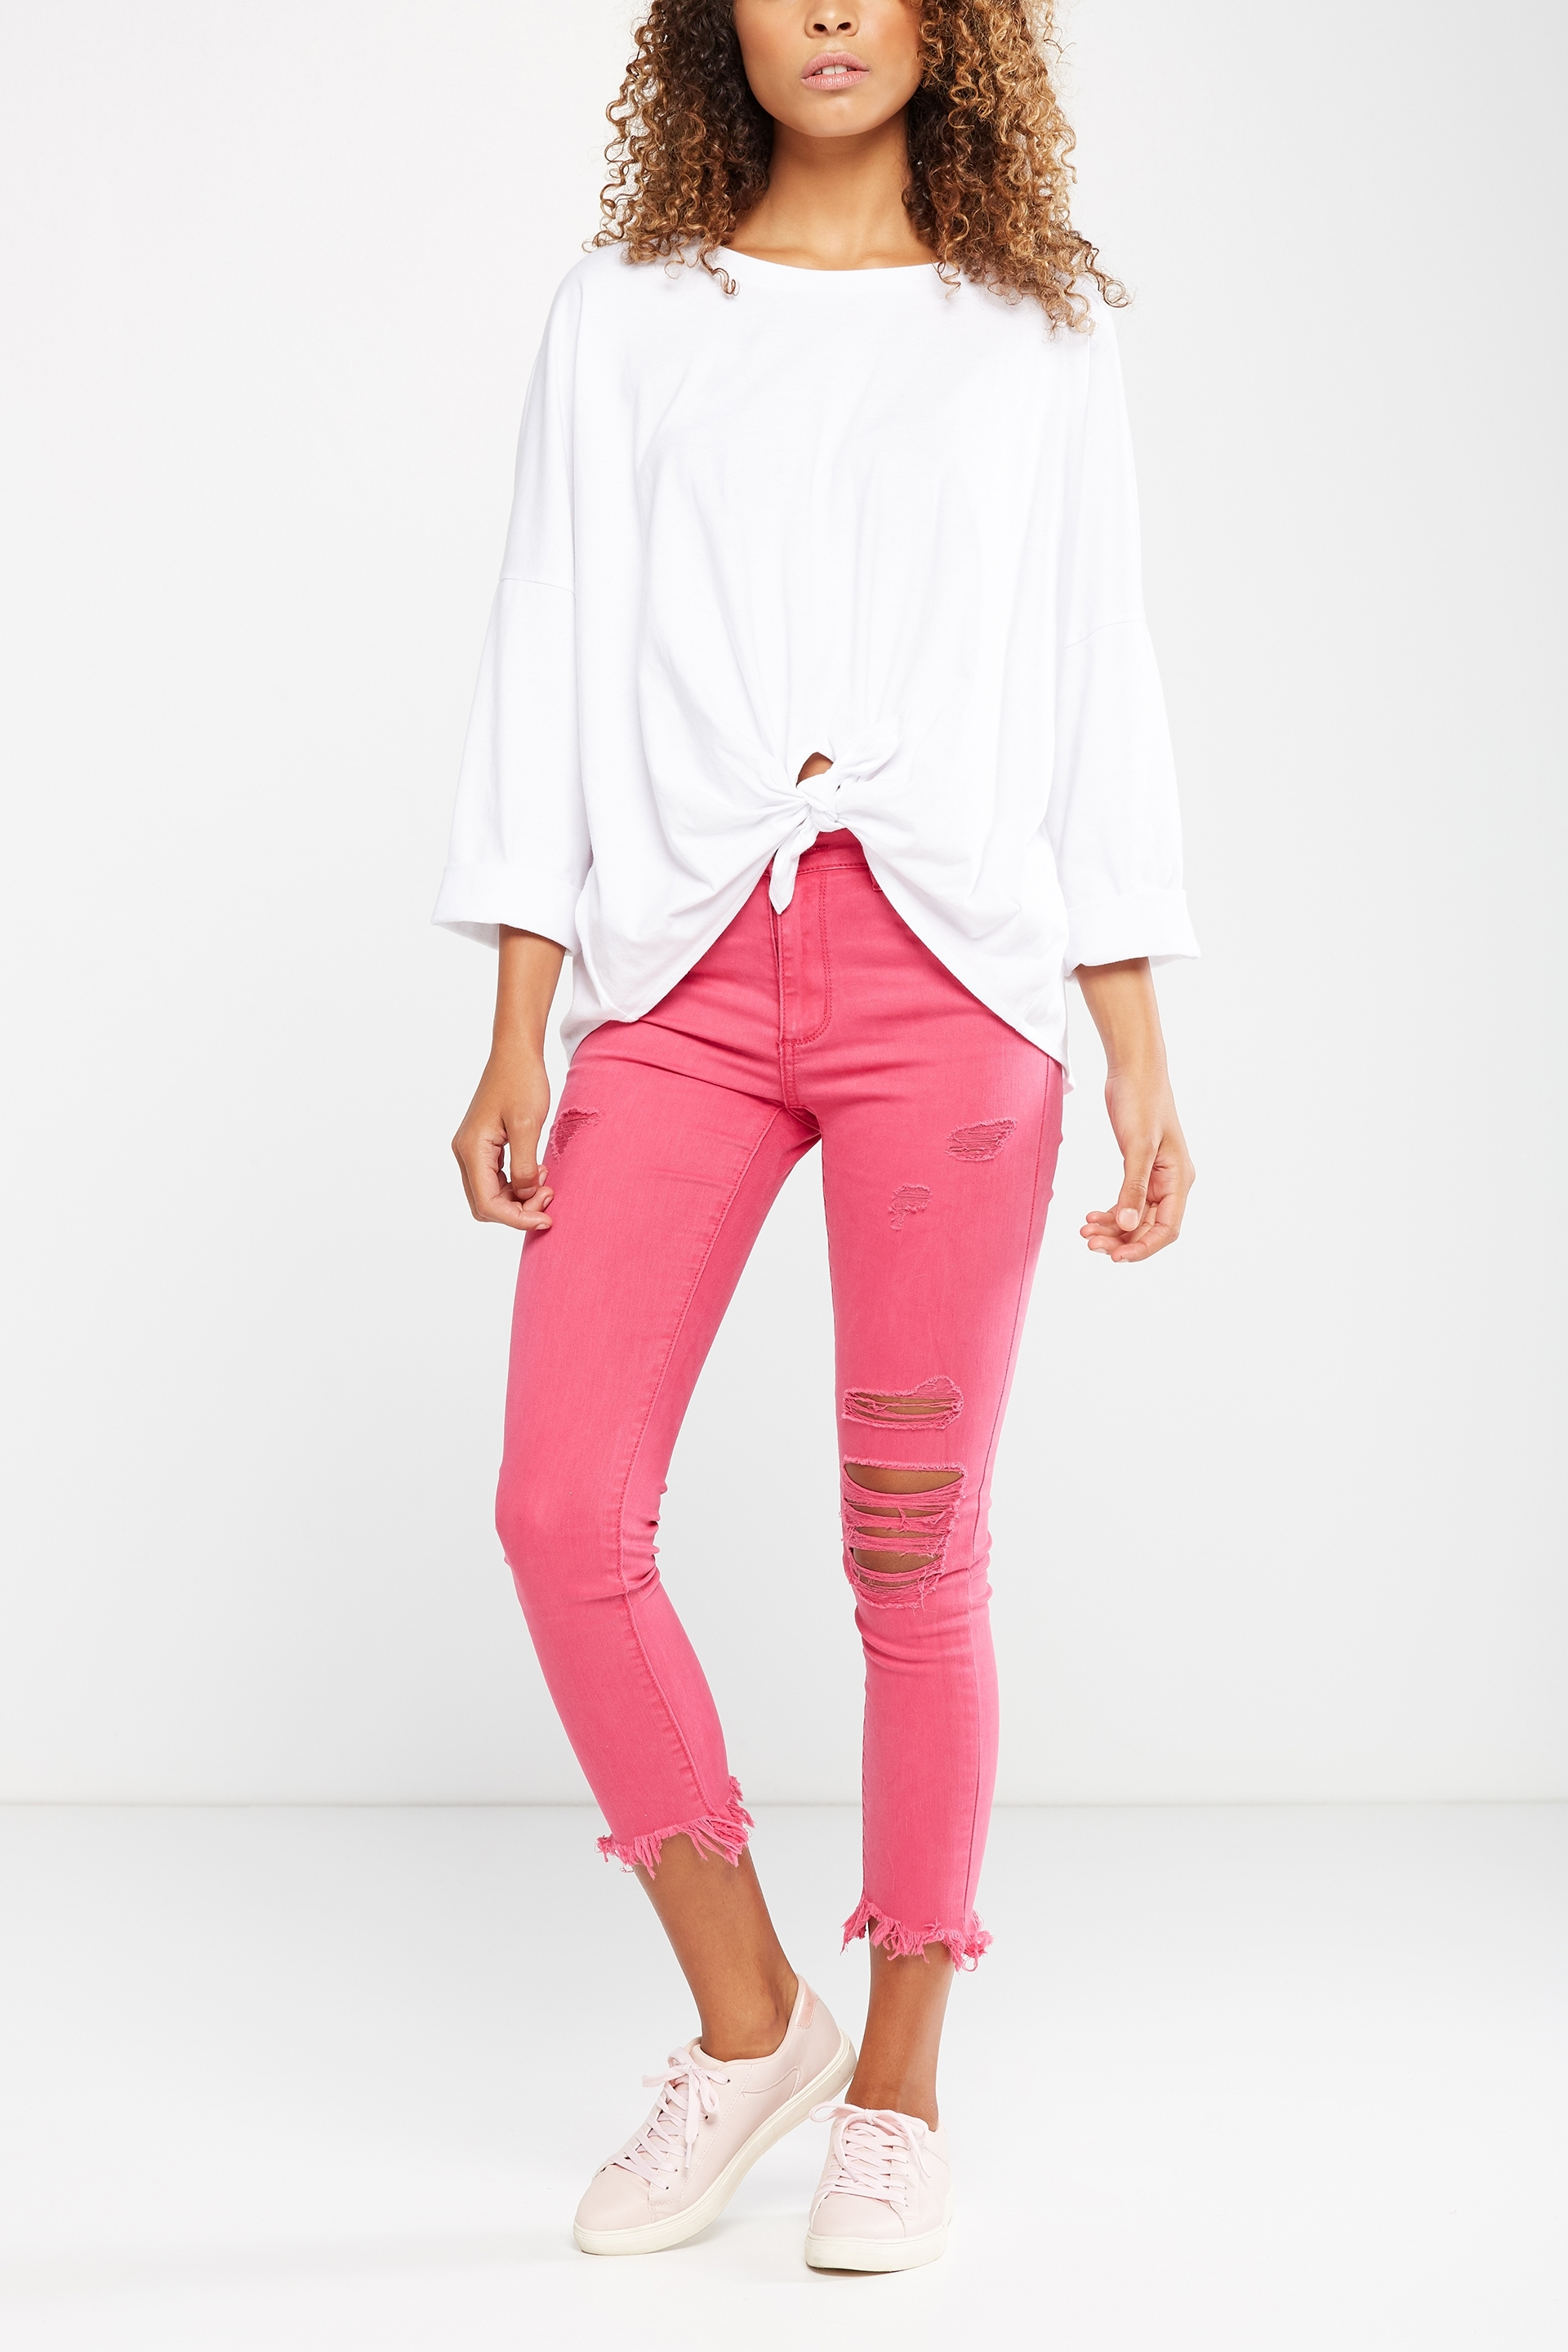 Cotton On Women - Mid Rise Grazer Skinny Jean - Pink rips